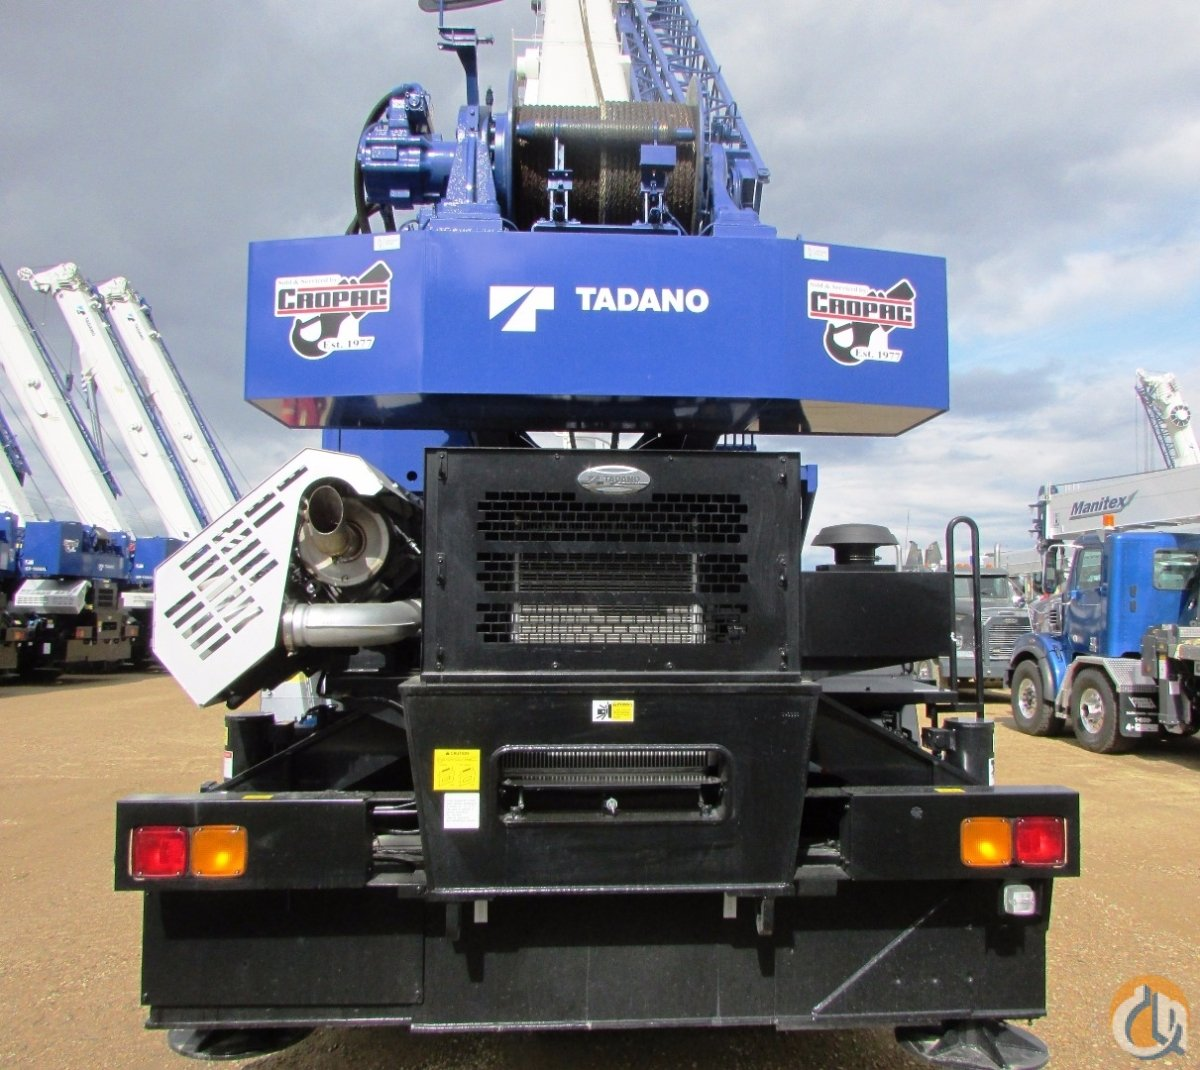 Tadano GR-550XL-2 Rough Terrain Cranes Crane for Sale 2015 TADANO GR550XL in Nisku  Alberta  Canada 218120 CraneNetwork